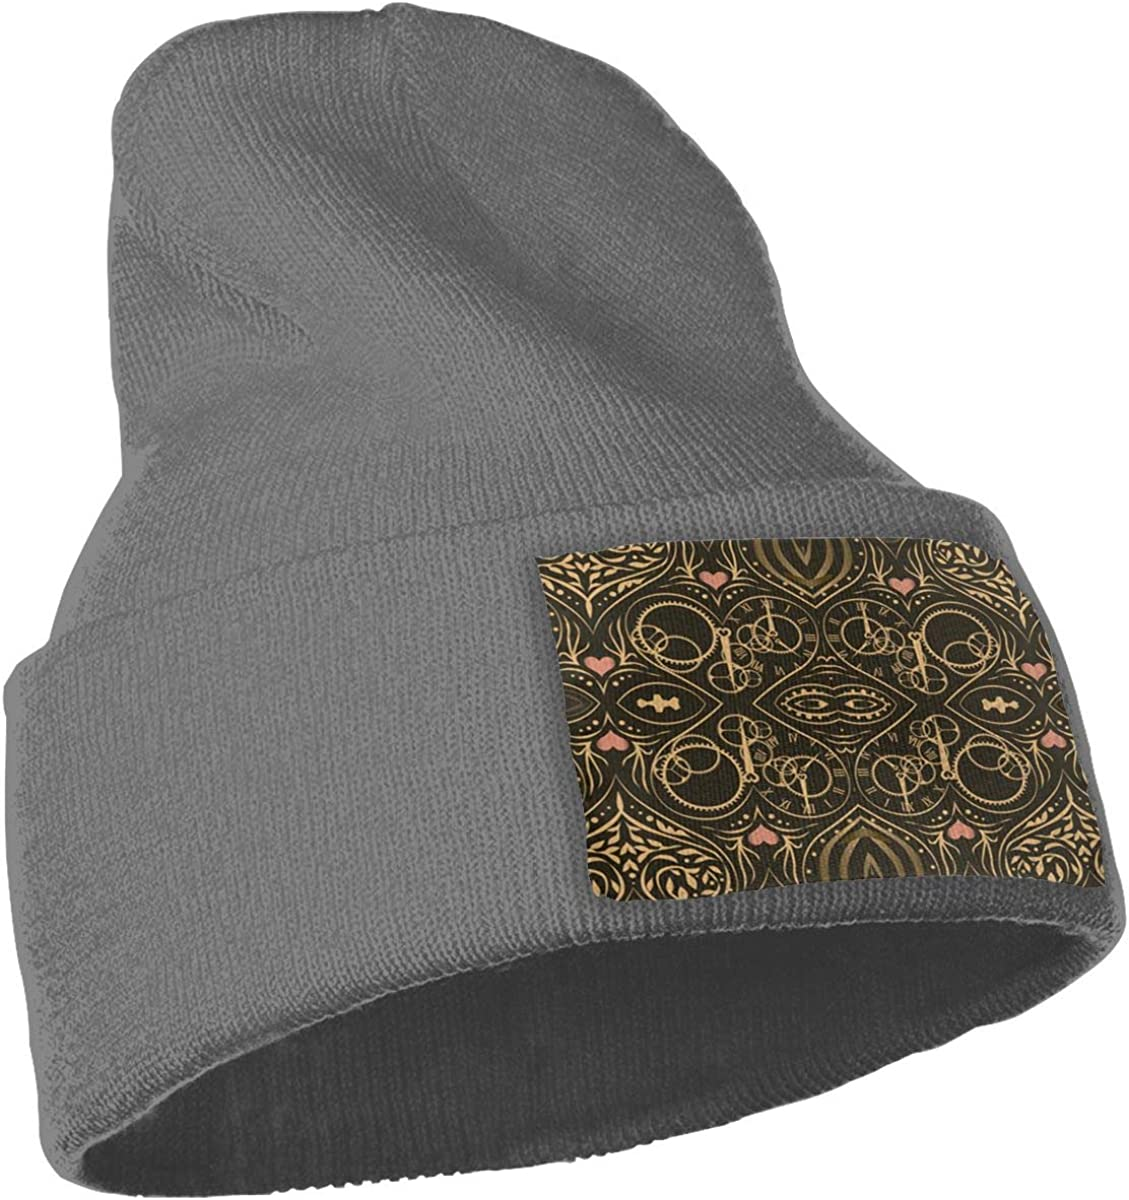 Egyptian Golden Totem Hat for Men and Women Winter Warm Hats Knit Slouchy Thick Skull Cap Black